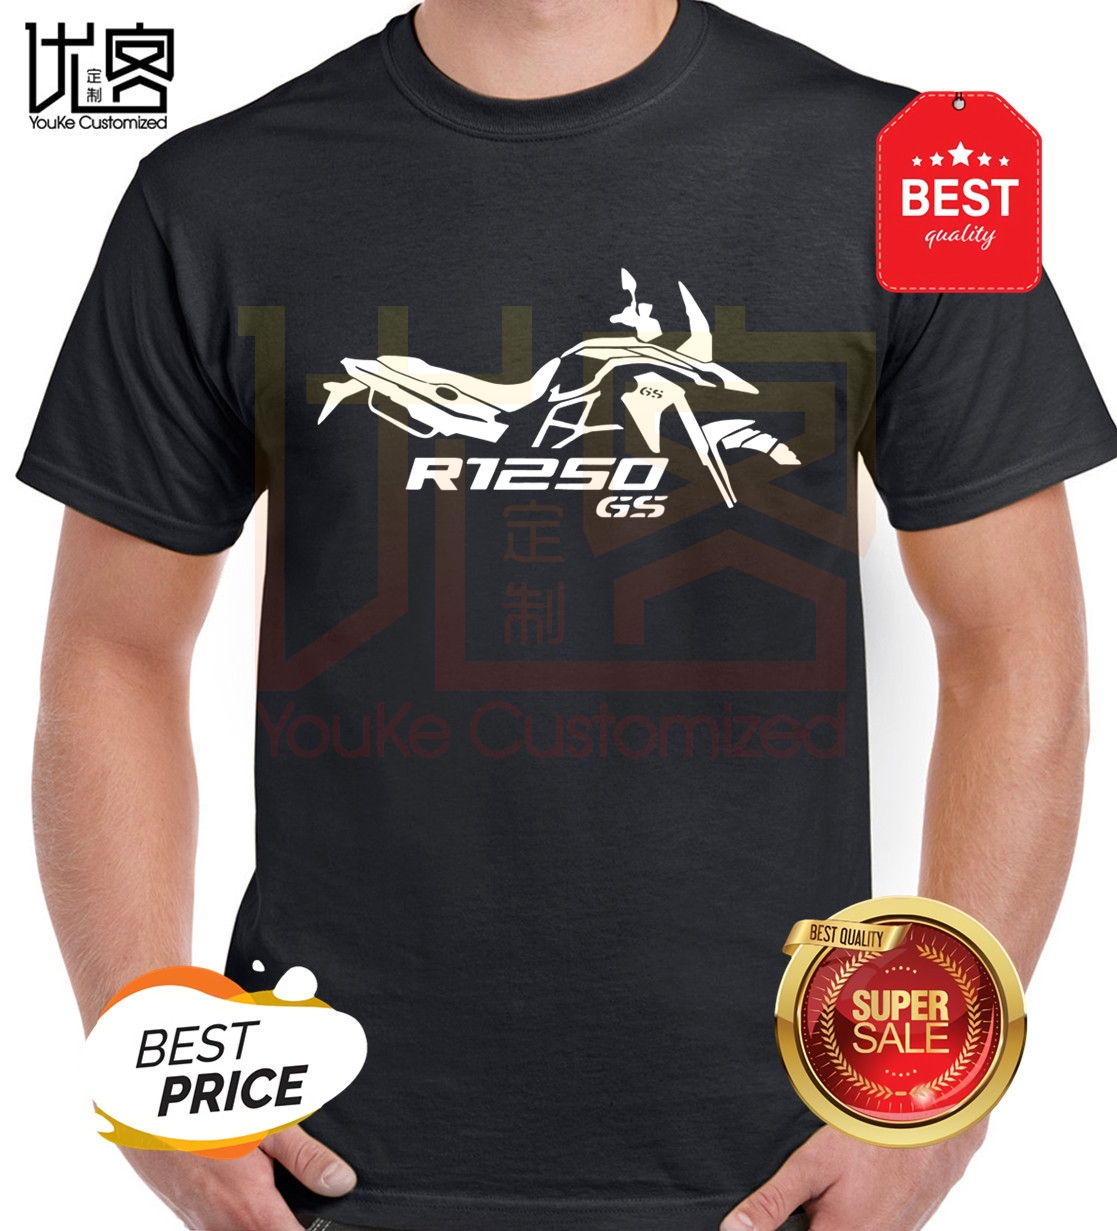 new r1250 <font><b>gs</b></font> motorbike <font><b>tshirt</b></font> motorcycle tee fast race biker top gp sport f1 men's women's 100% cotton short sleeves tops tee image